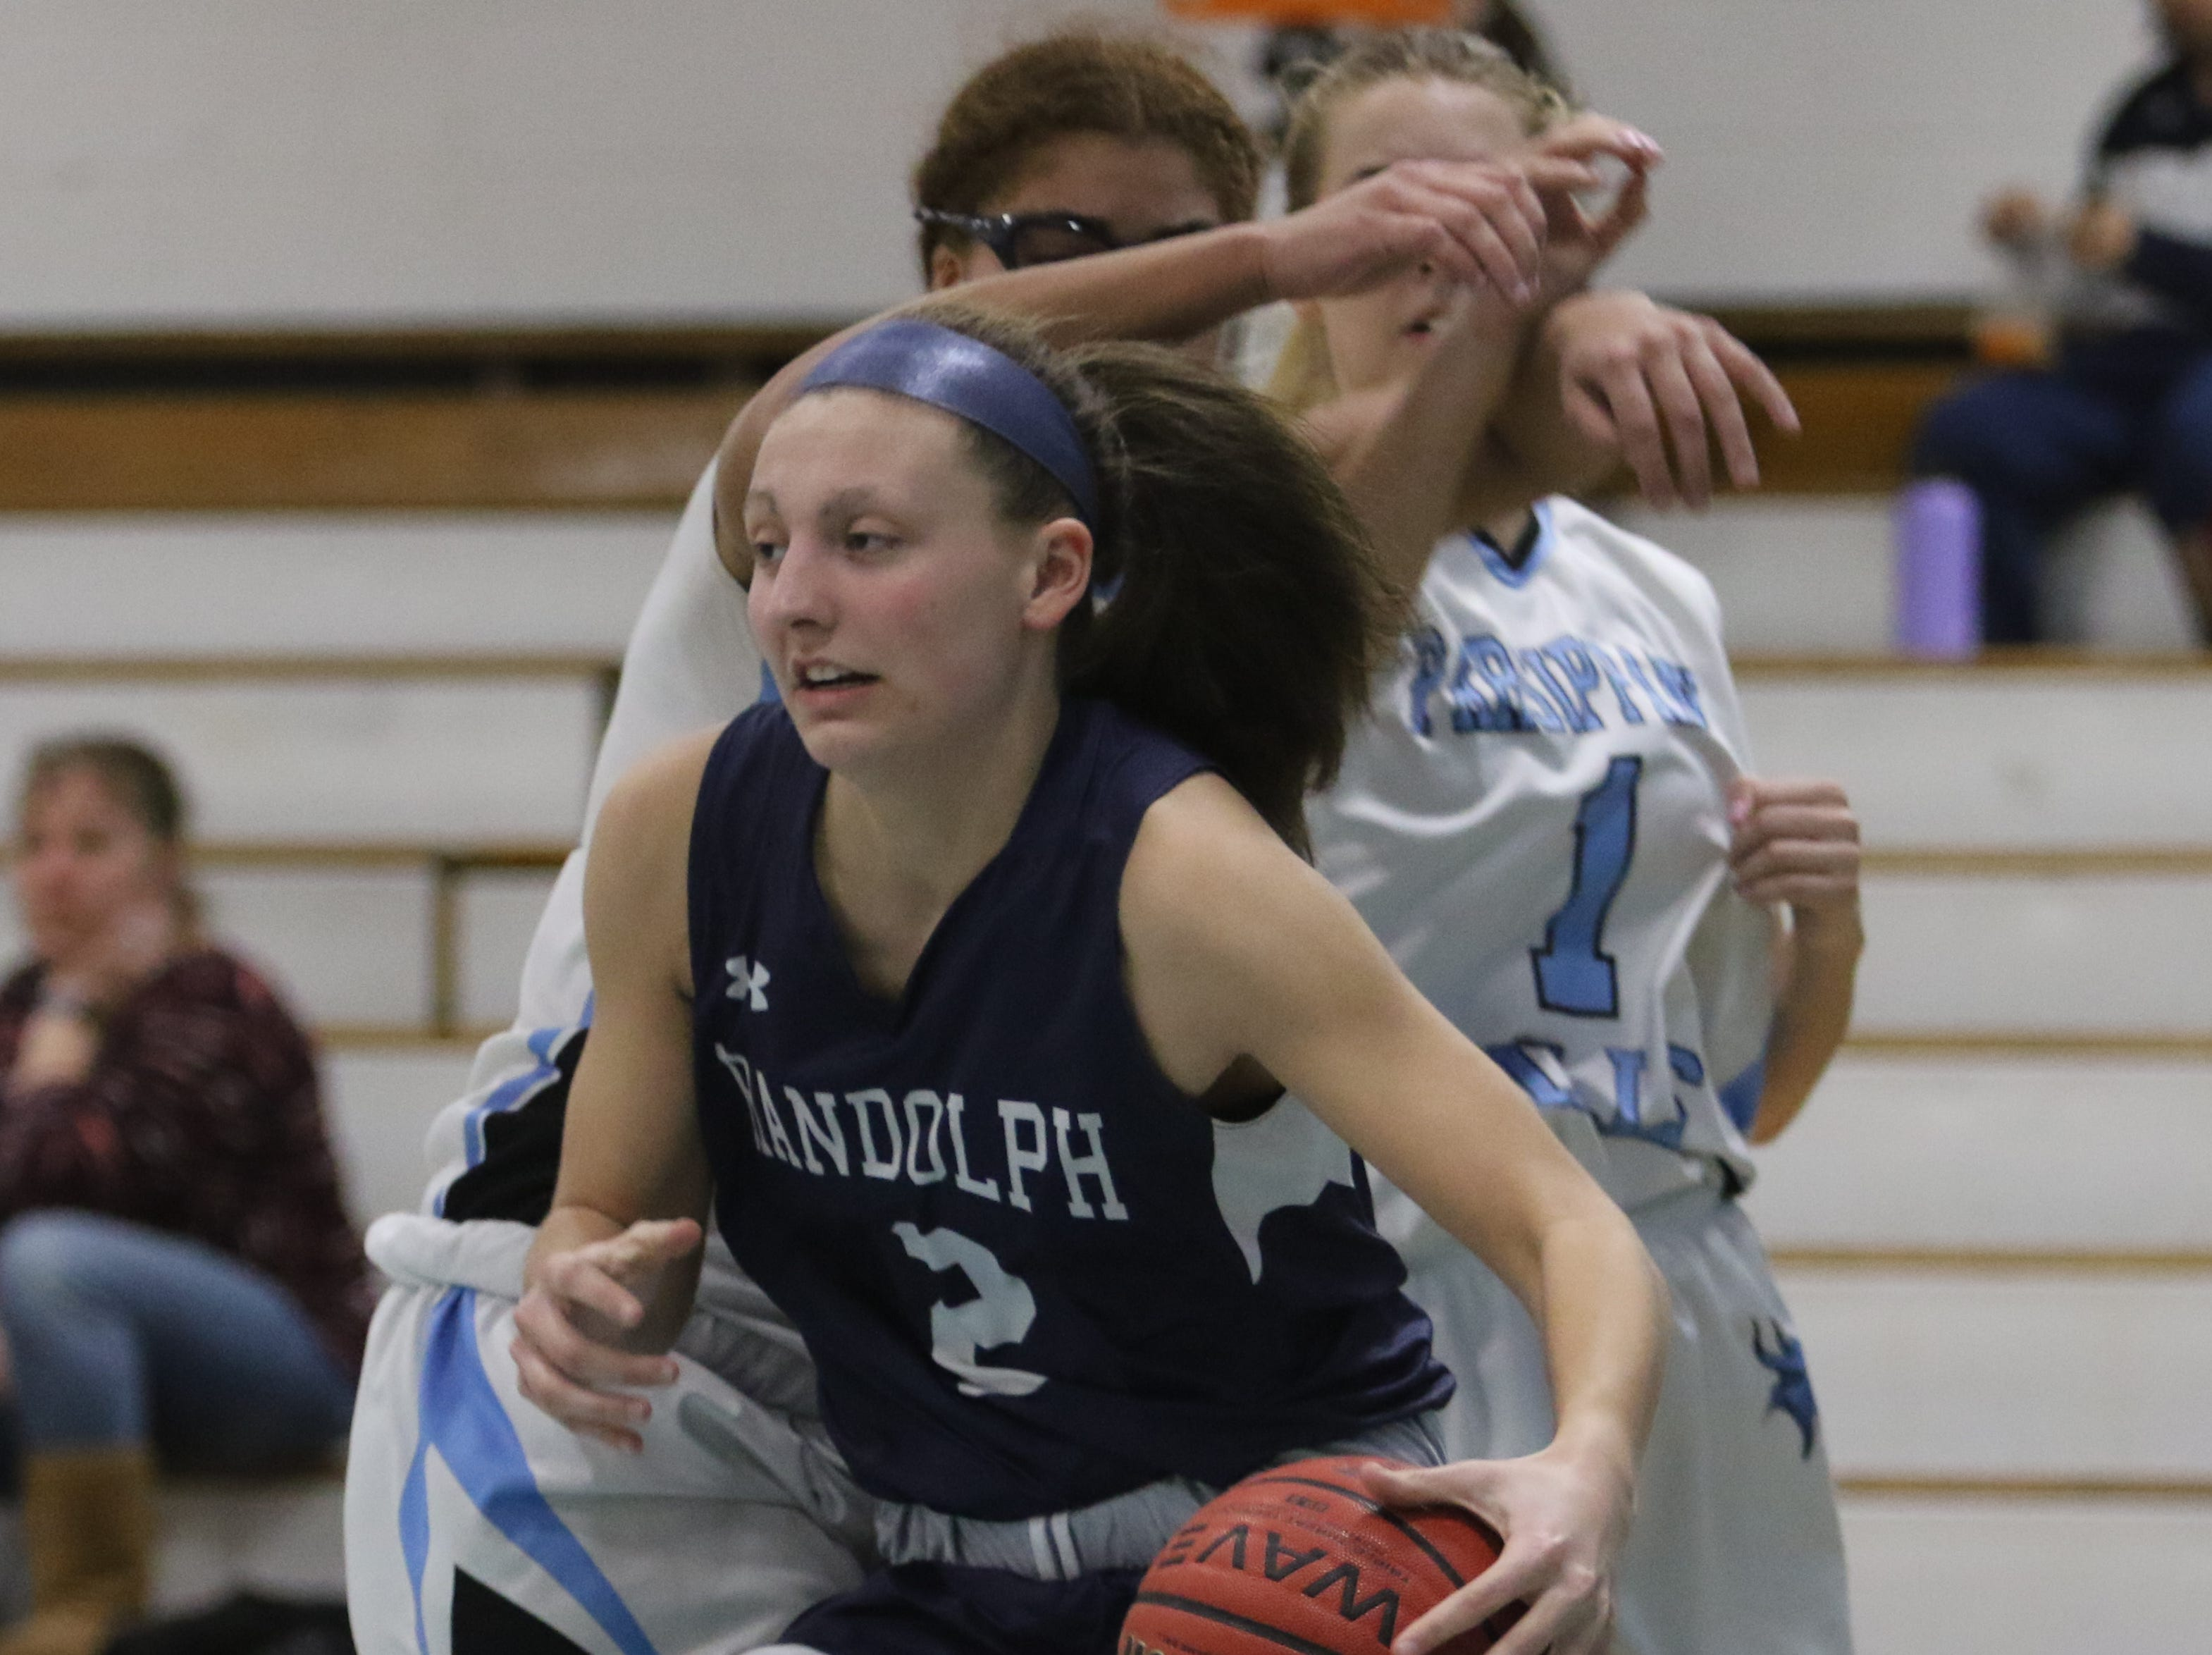 Alyssa Alfieri of Randolph controls the rebound in the second half.